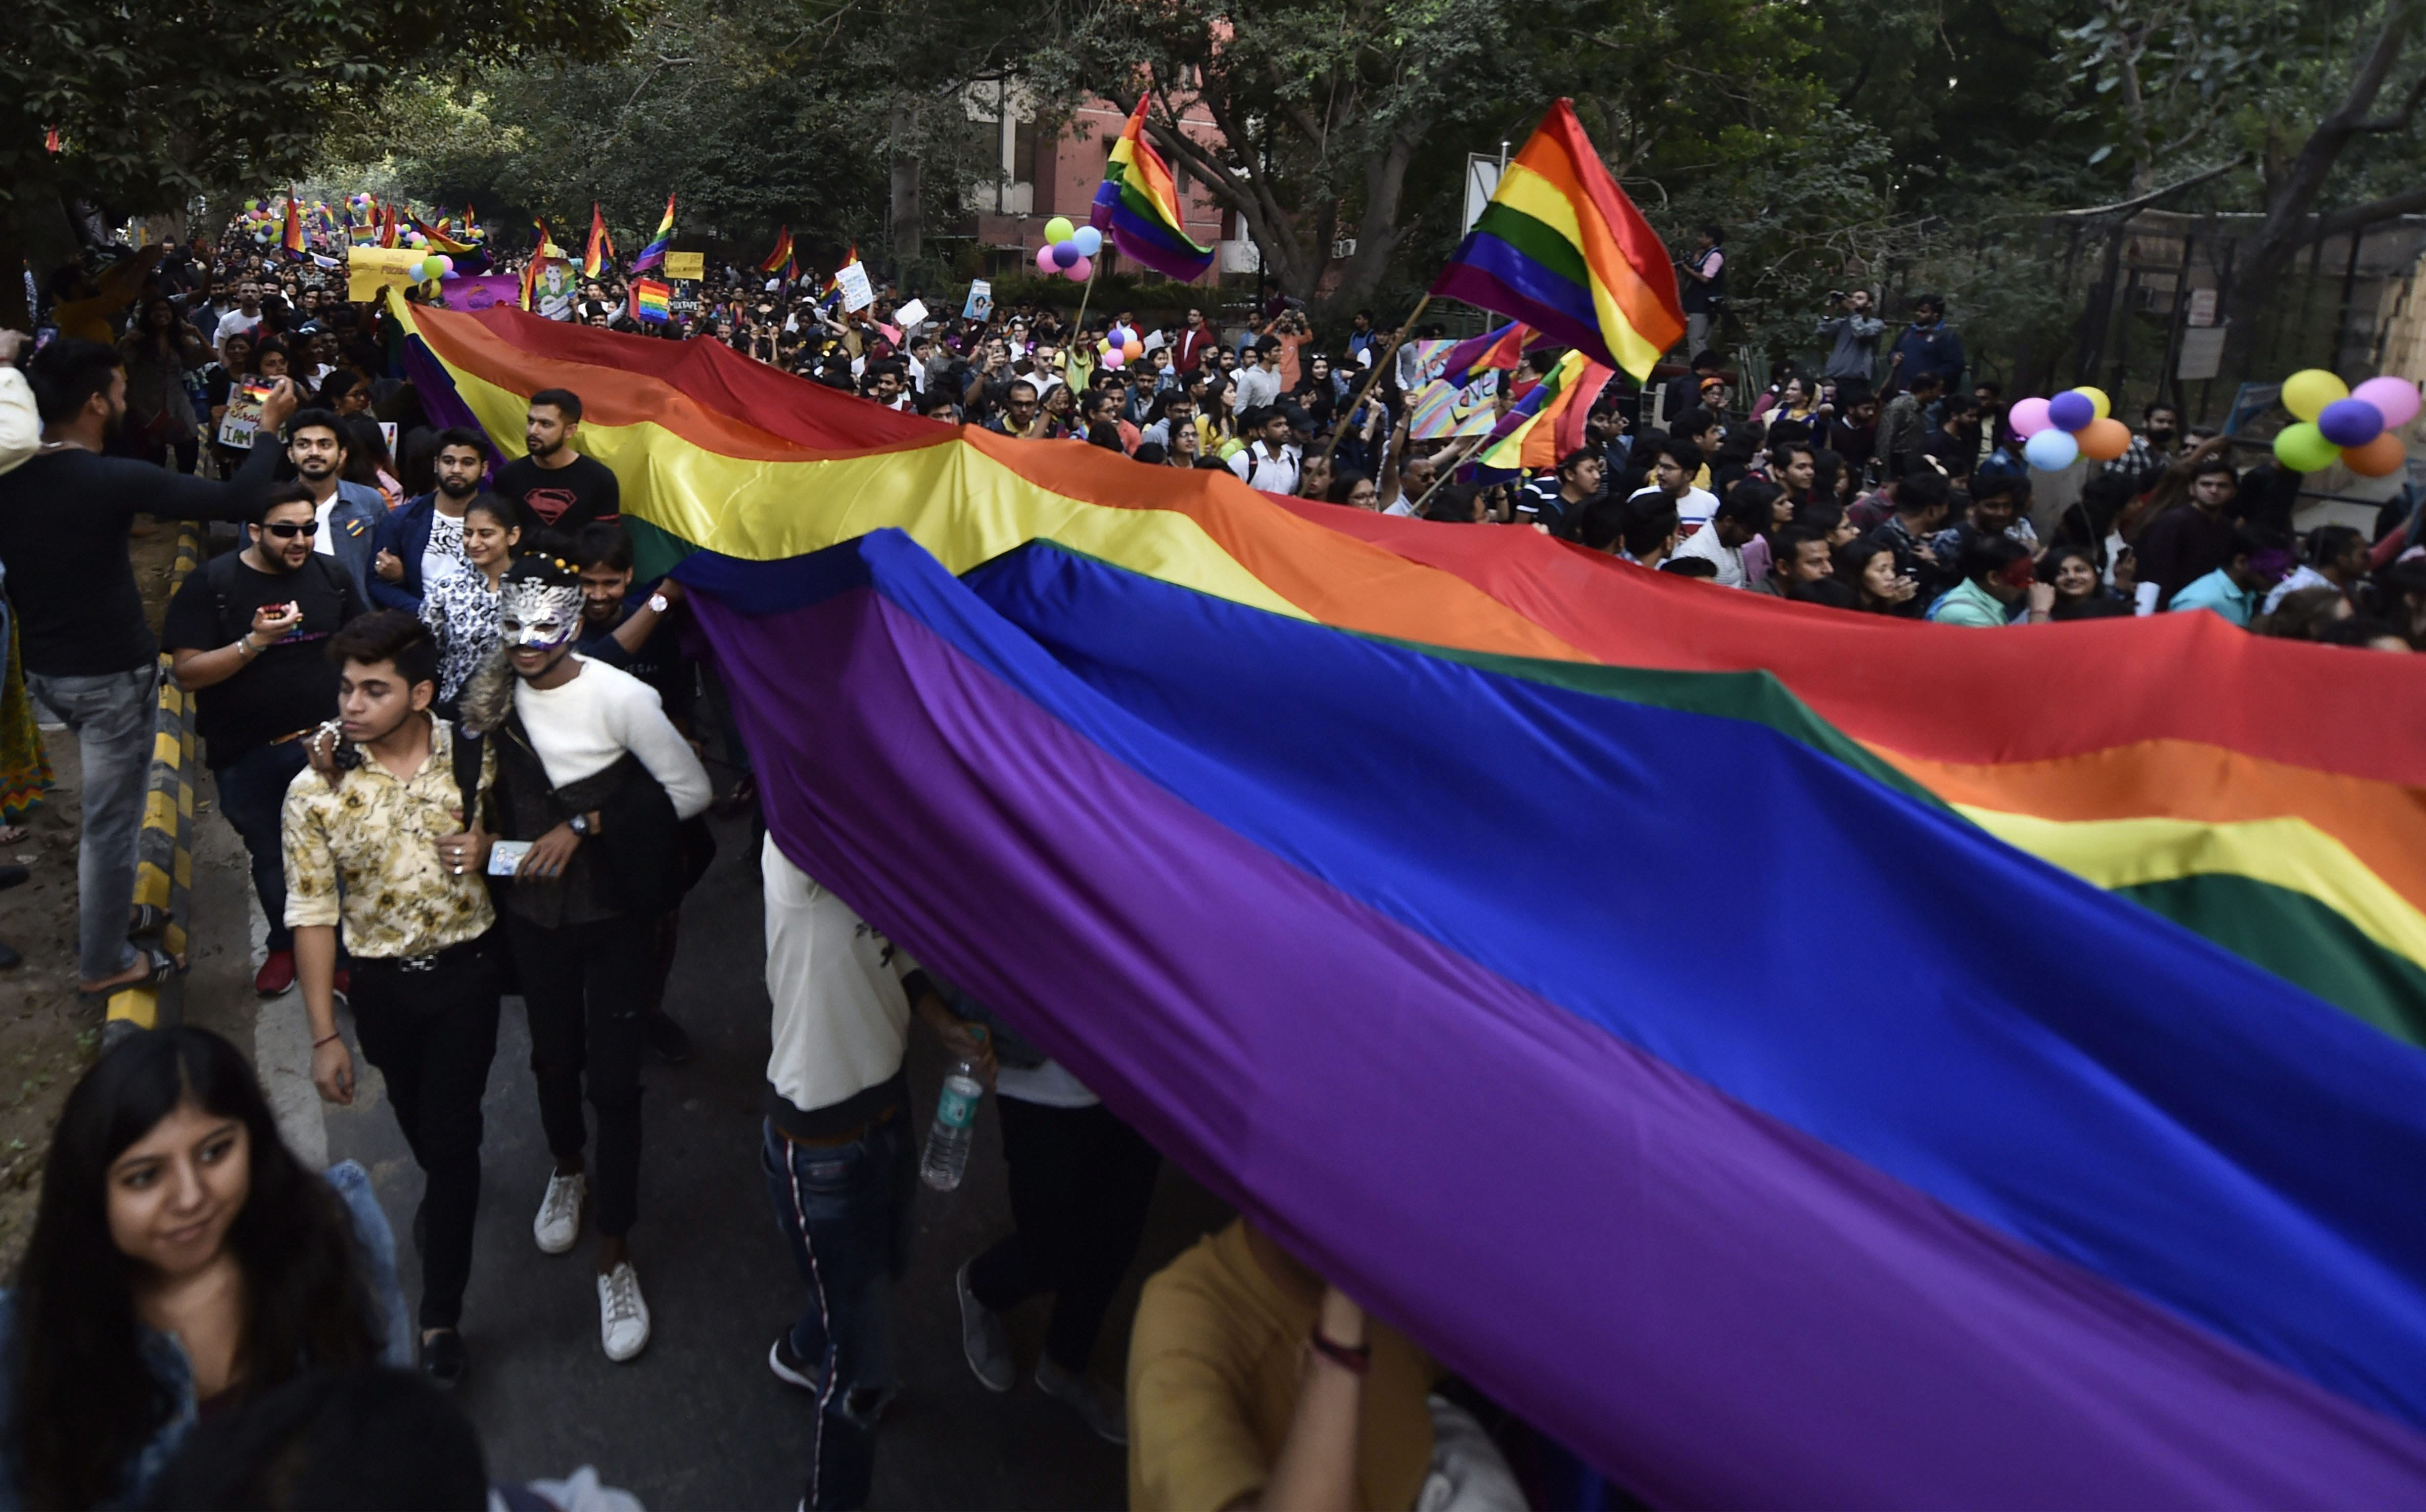 Colour me rainbow: Delhi LGBTQ+ community walks to claim their place in society